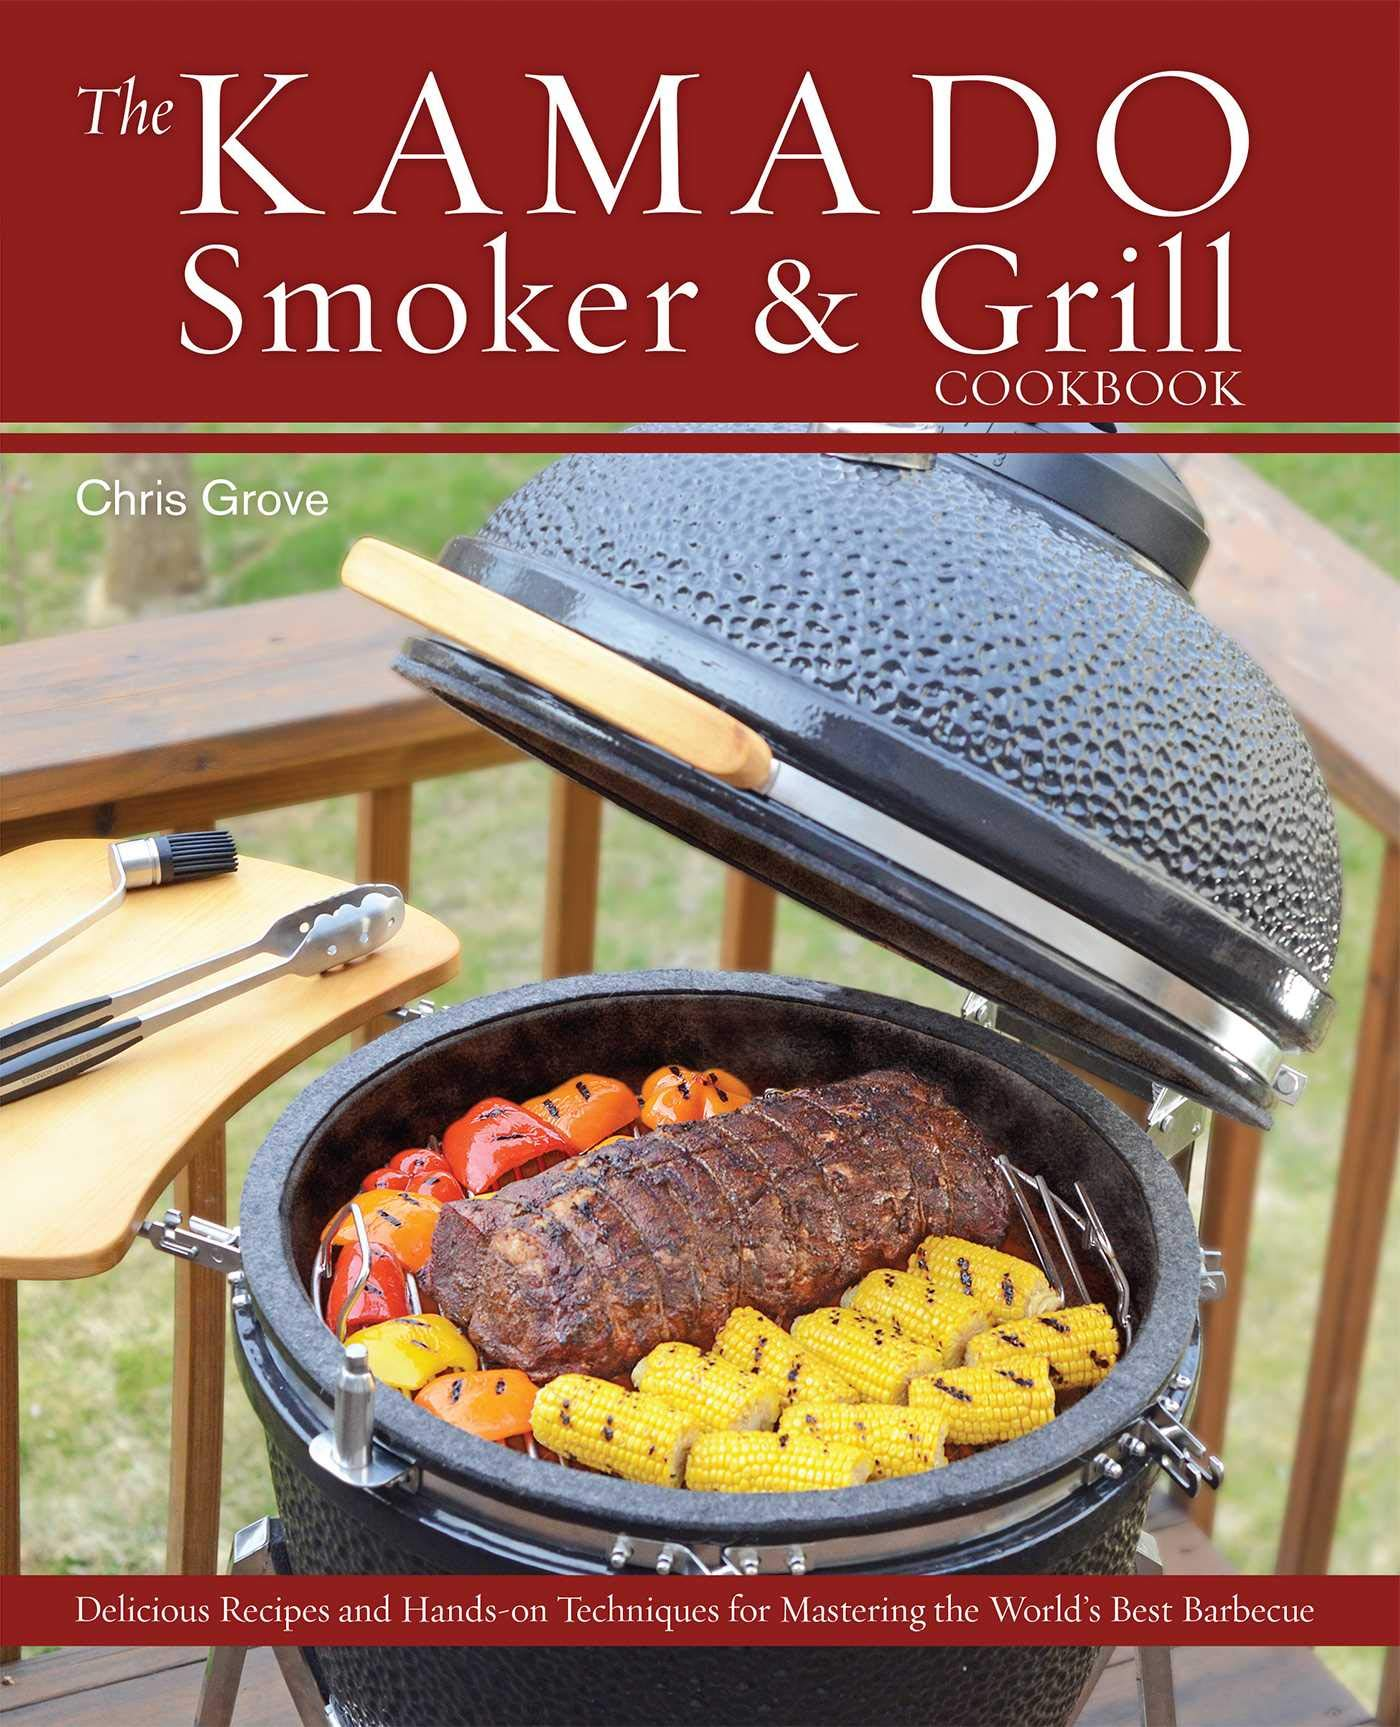 The Kamado Smoker and Grill Cookbook: Recipes and Techniques for